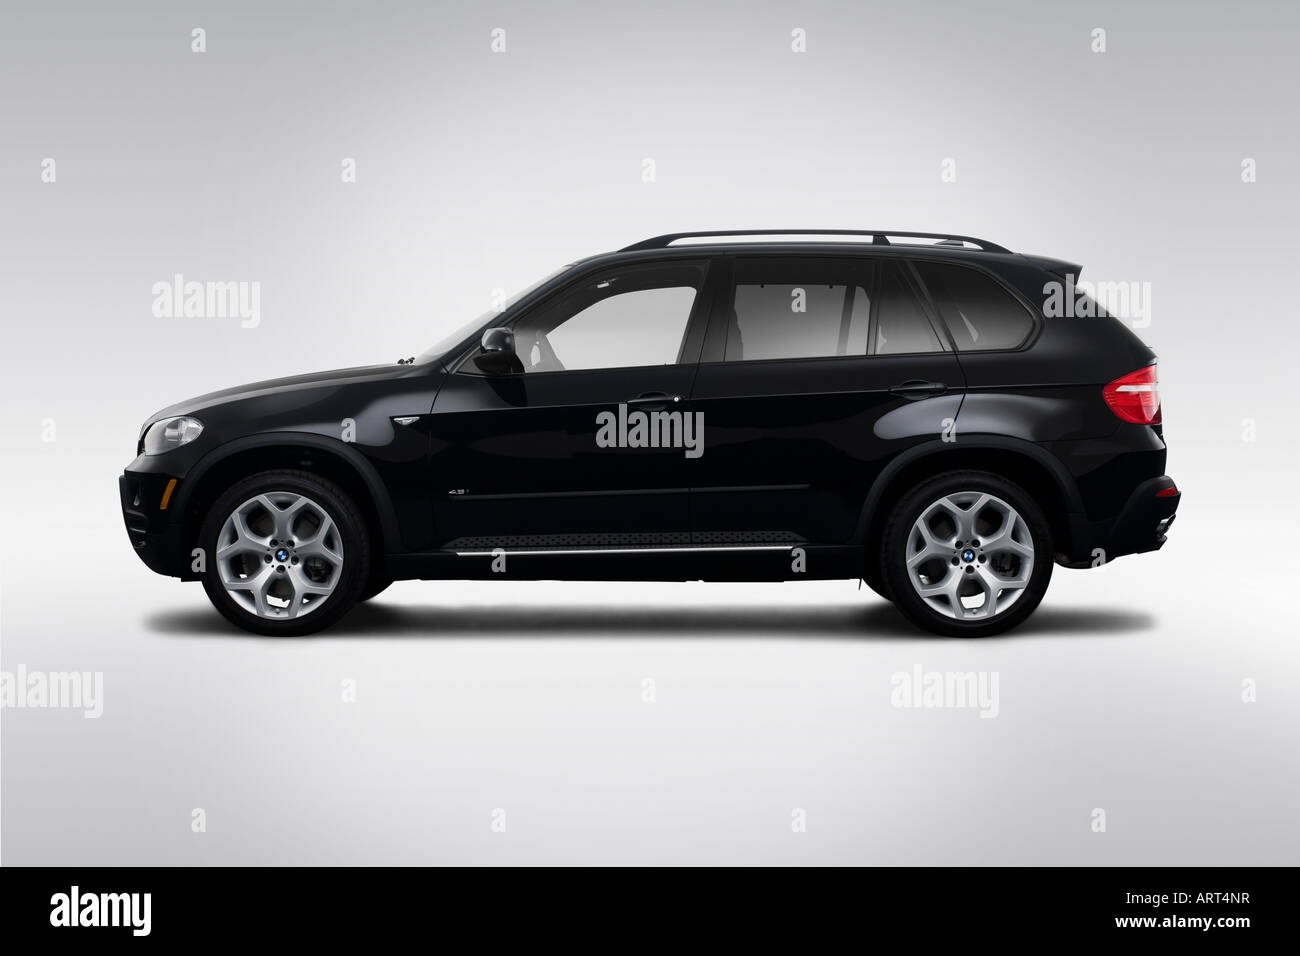 All Types 2008 x5 : 2008 BMW X5 4.8i in Black - Drivers Side Profile Stock Photo ...